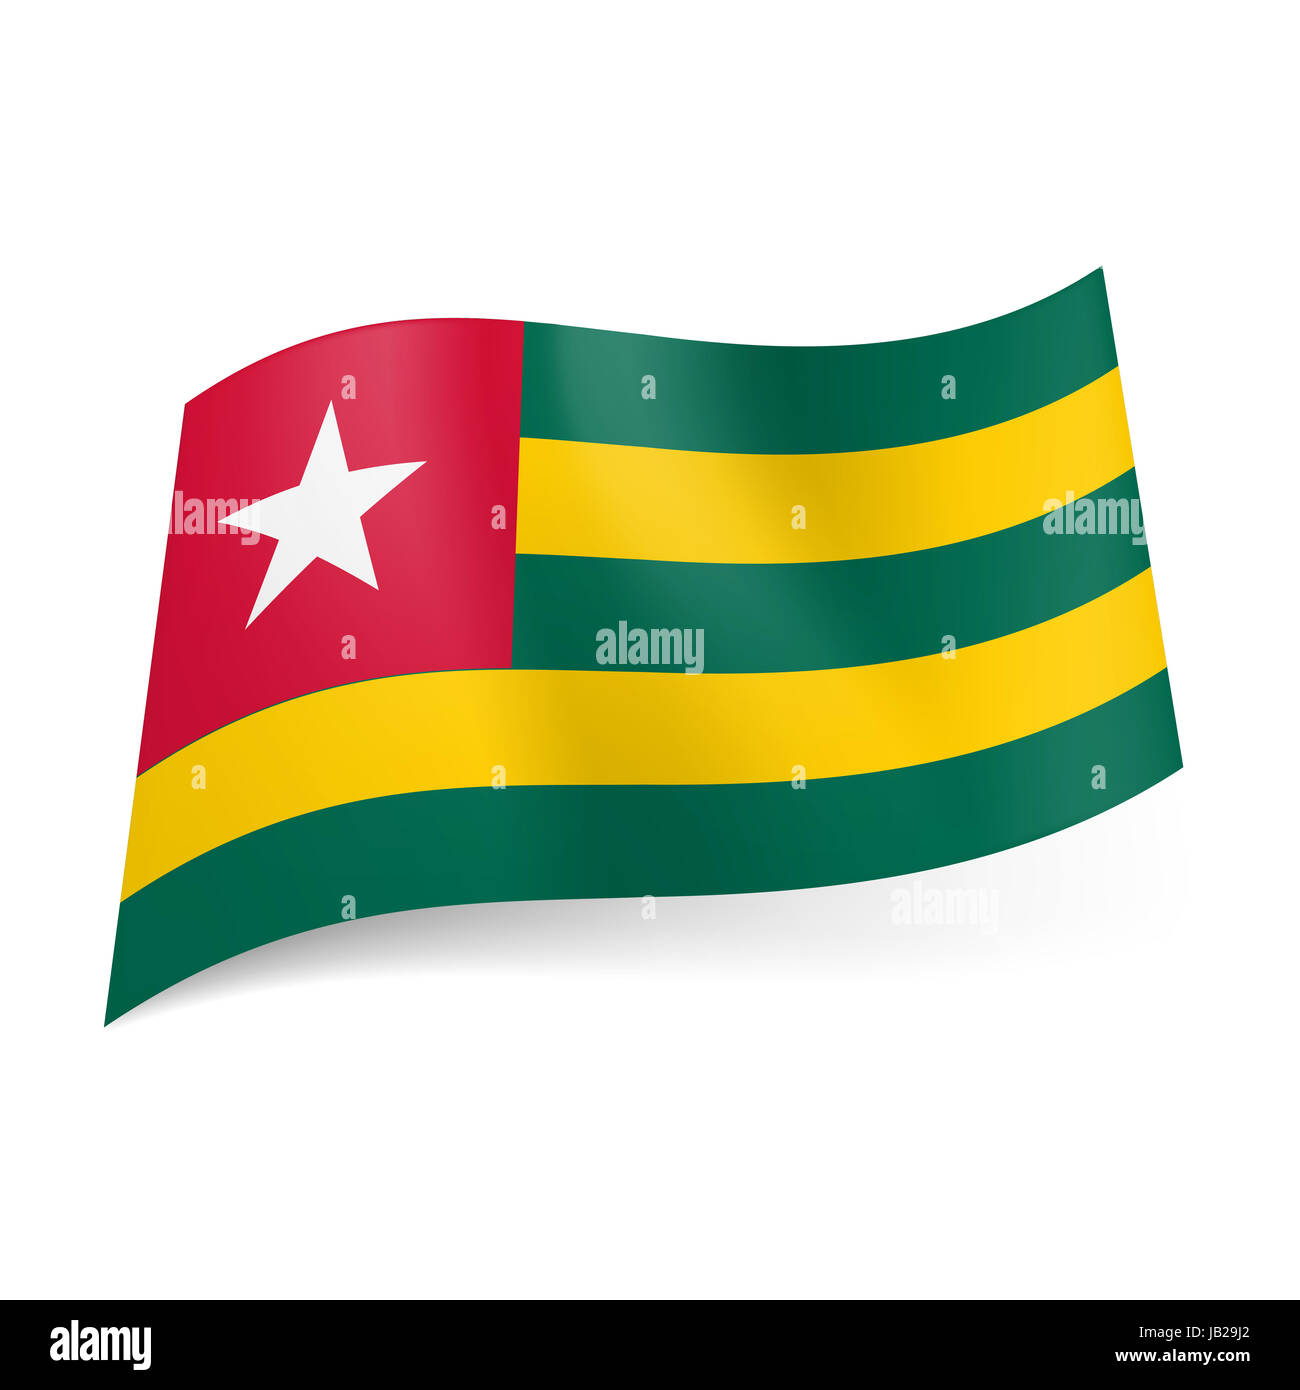 National Flag Of Togo Green And Yellow Horizontal Stripes Red